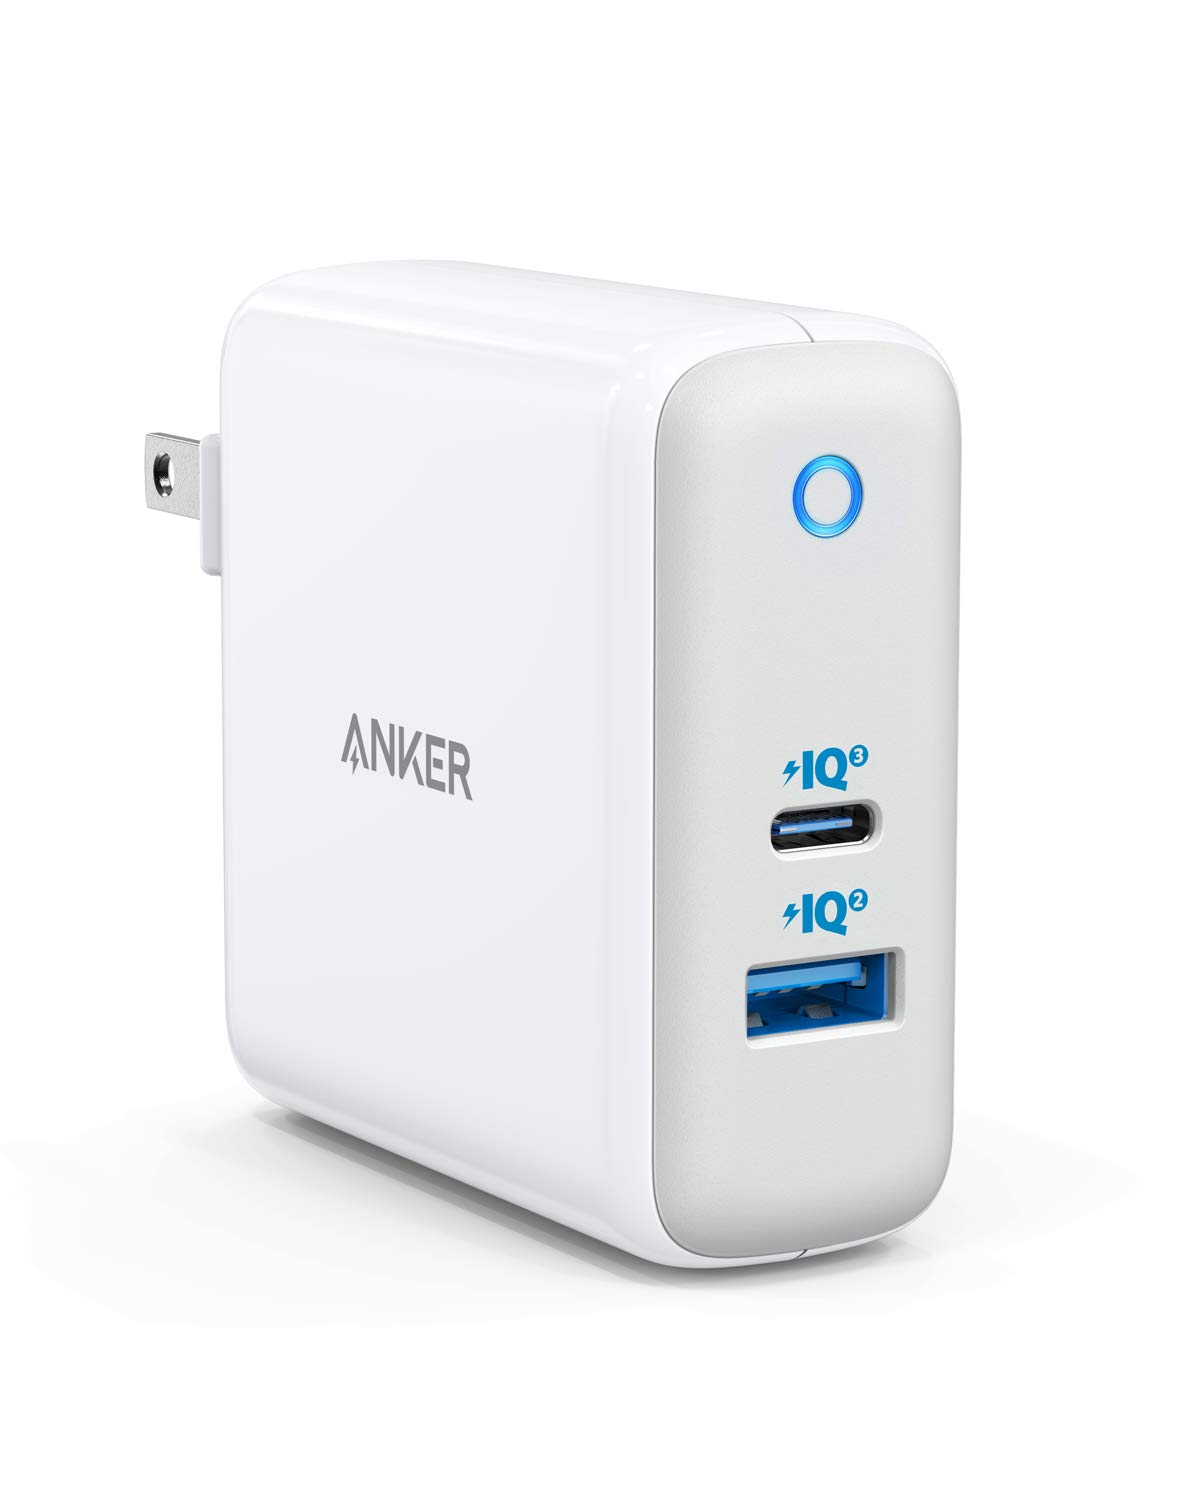 USB C Charger, Anker 60W PIQ 3.0 & GaN Tech Dual Port Charger, PowerPort Atom III (2 Ports) Travel Charger with a 45W USB C Port, for USB-C Laptops, MacBook, iPad Pro, iPhone, Galaxy, Pixel and More by Anker